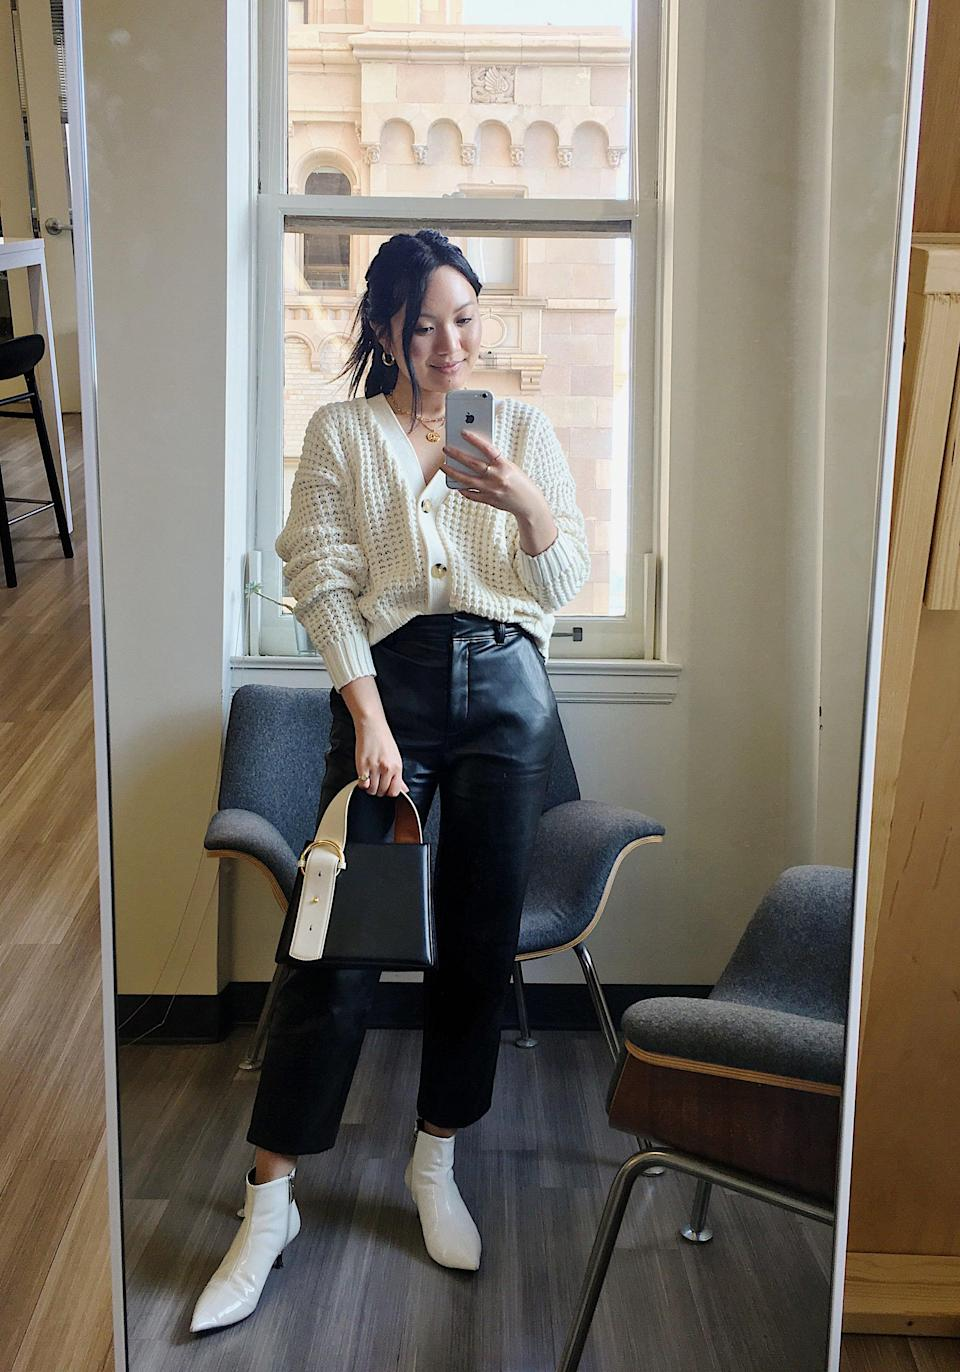 """<p>""""This cardigan is everything I want in a Winter piece; it's cozy, comfy, and versatile! I love wearing it buttoned as a top with sleek leather trousers and accessories for the office, but can also see it thrown over a slinky slip dress and tall suede boots for a nighttime look."""" - Stephanie Nguyen, native style editor</p>"""